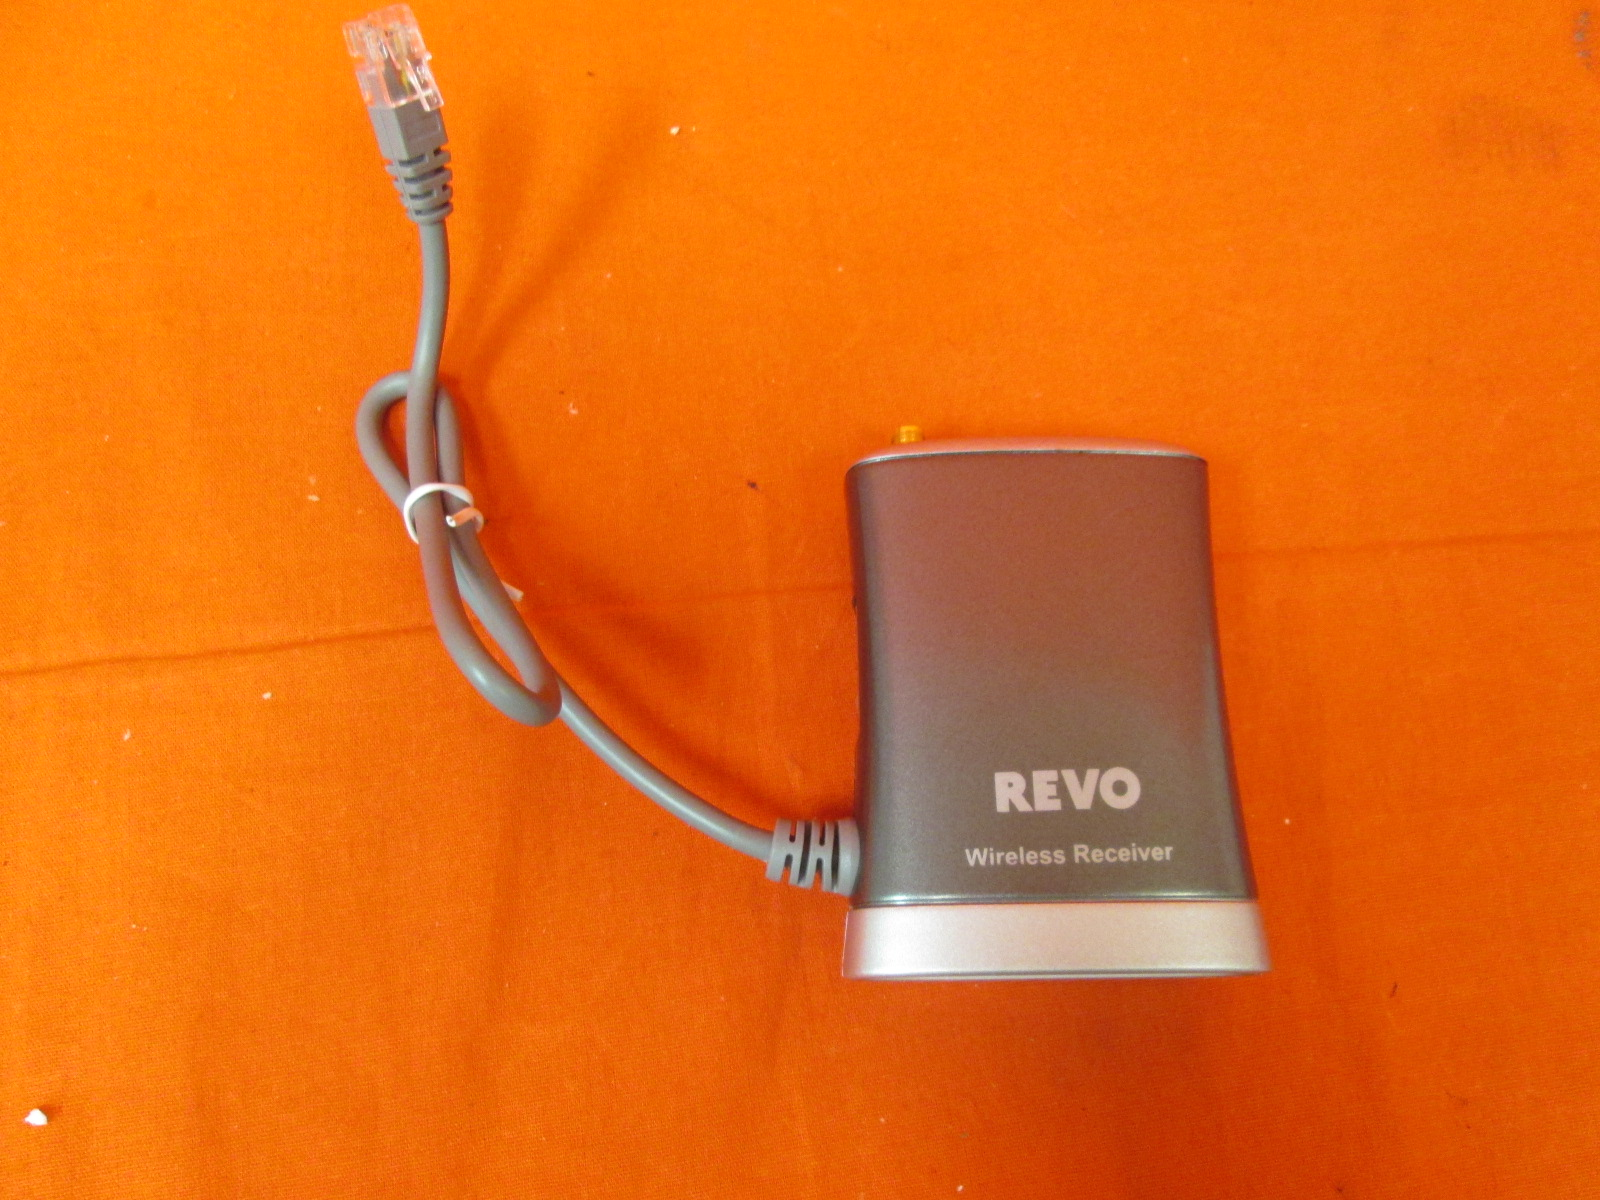 Broken Revo RCWBS30-1R Wireless Receivers For Revo Security Cameras